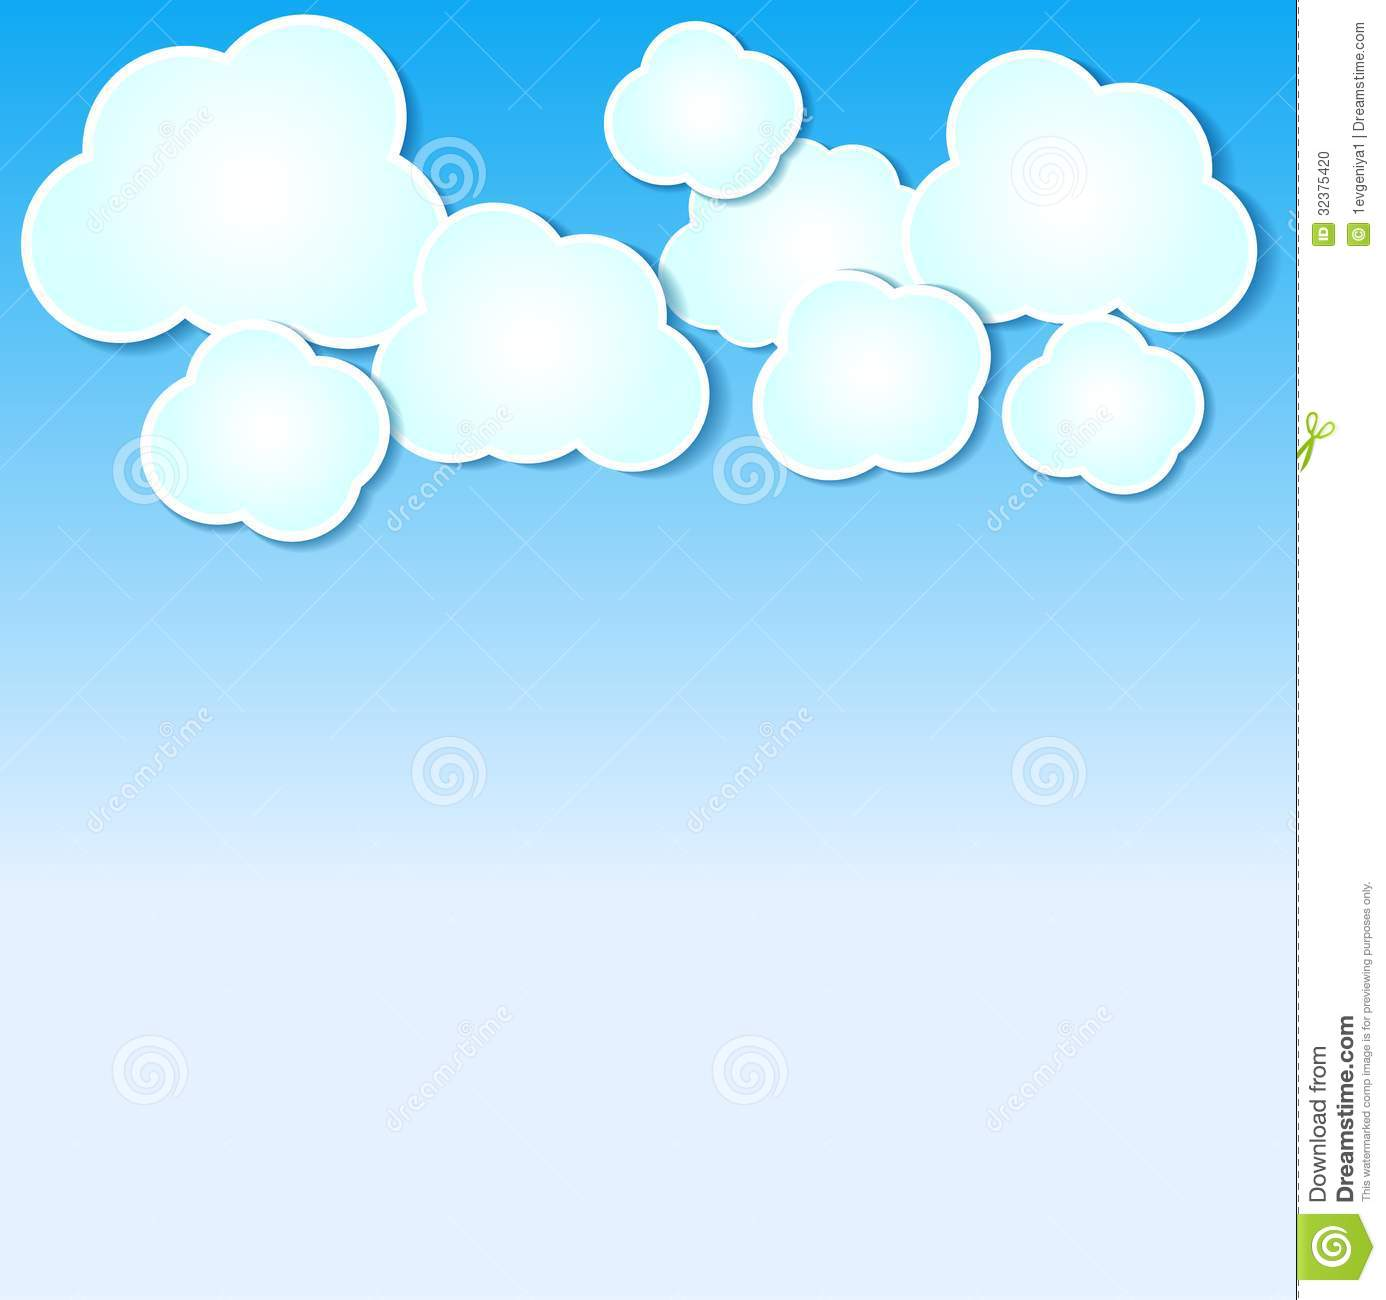 paper clouds illustrated clipart panda free clipart images rh clipartpanda com image clipart ski sky clipart free